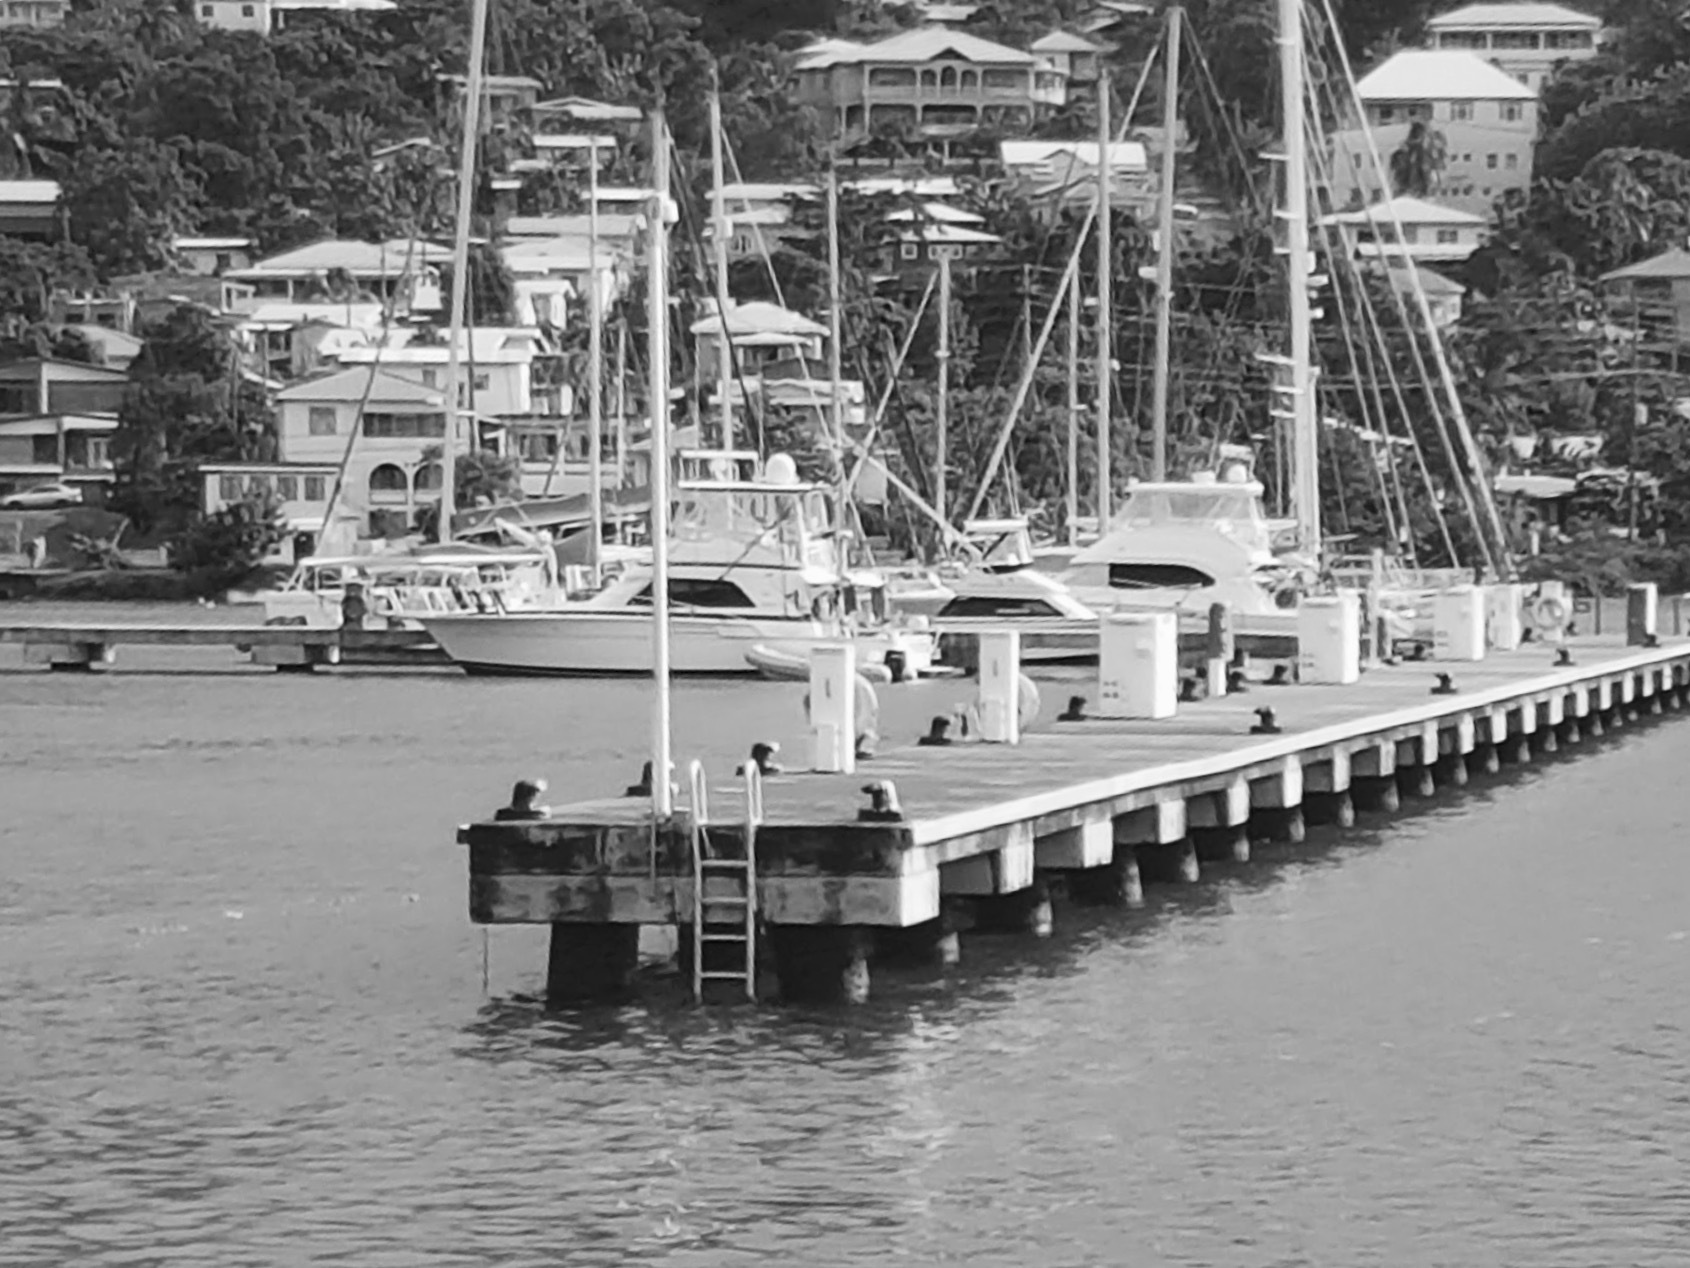 St.George marina in black & White by Nicki Fothergill